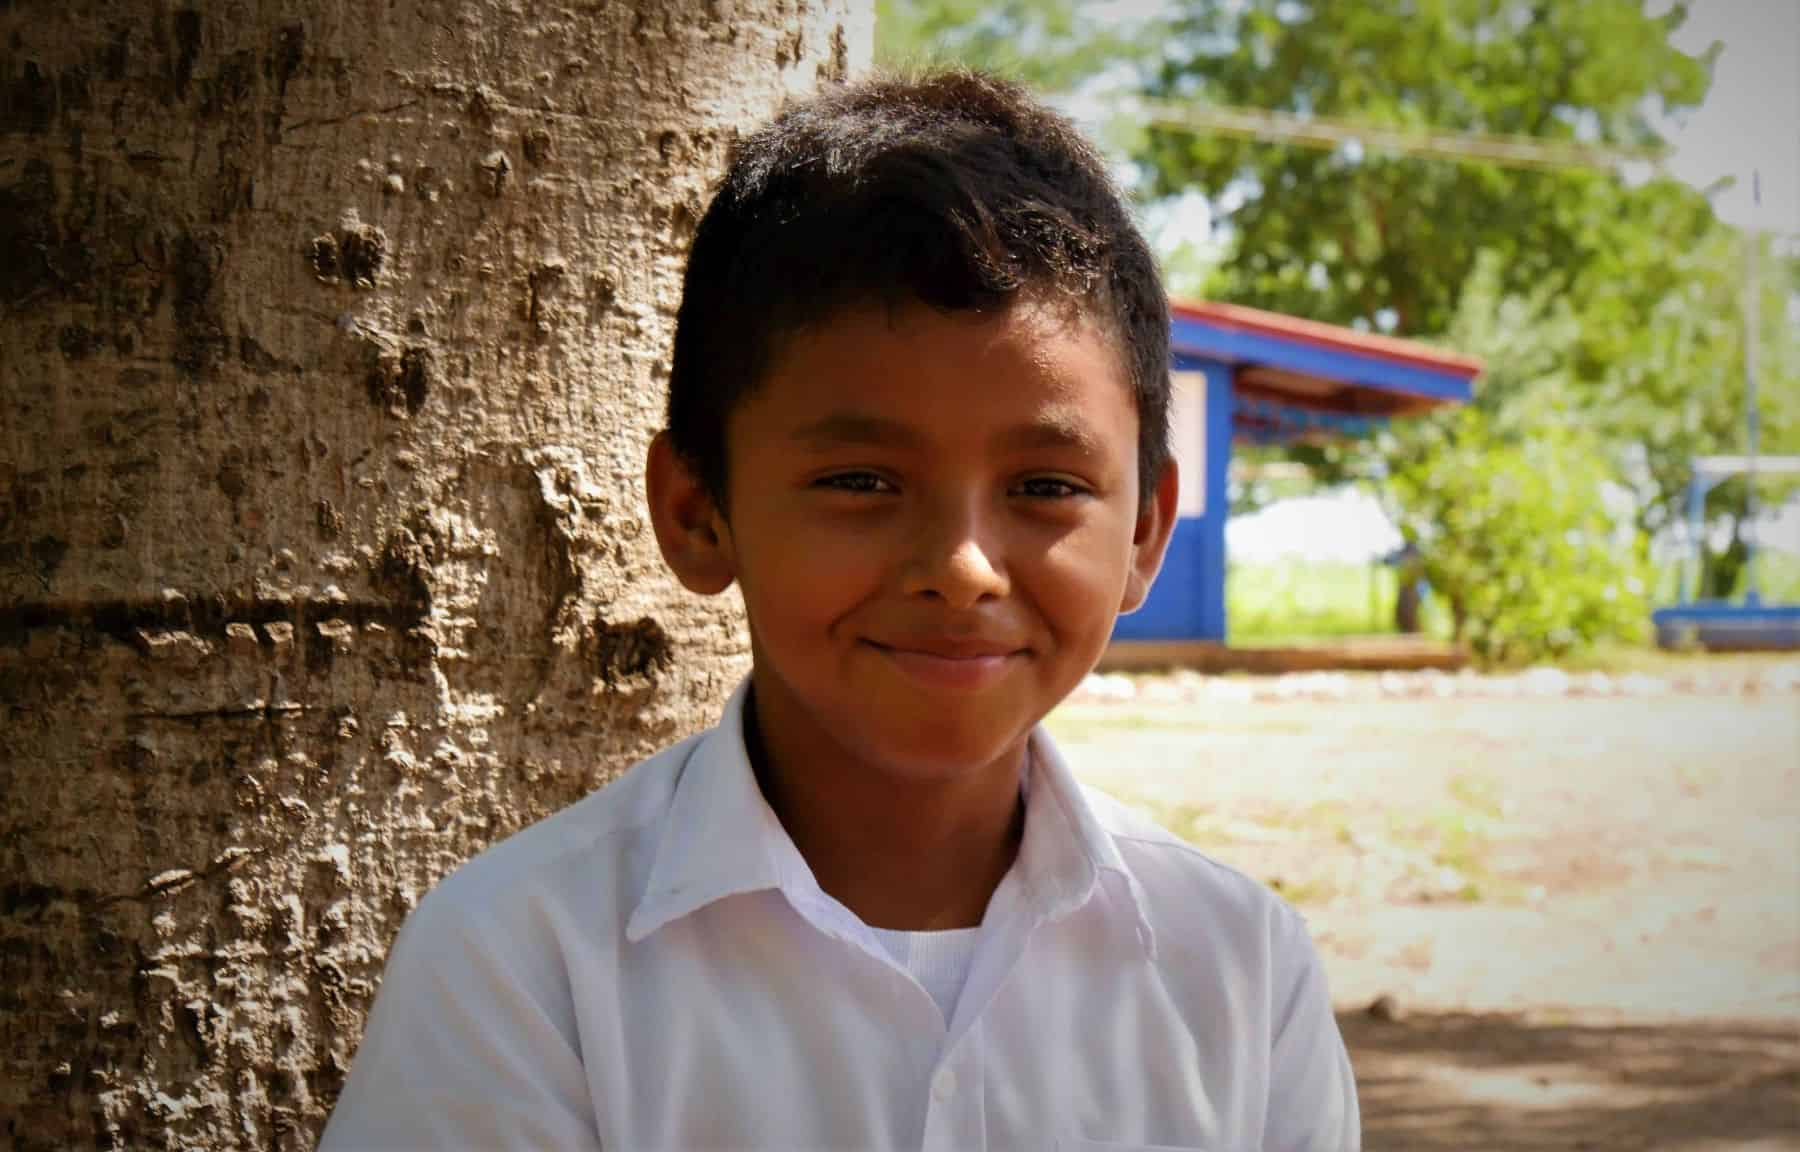 Kevin's health and grades have improved through safe water.